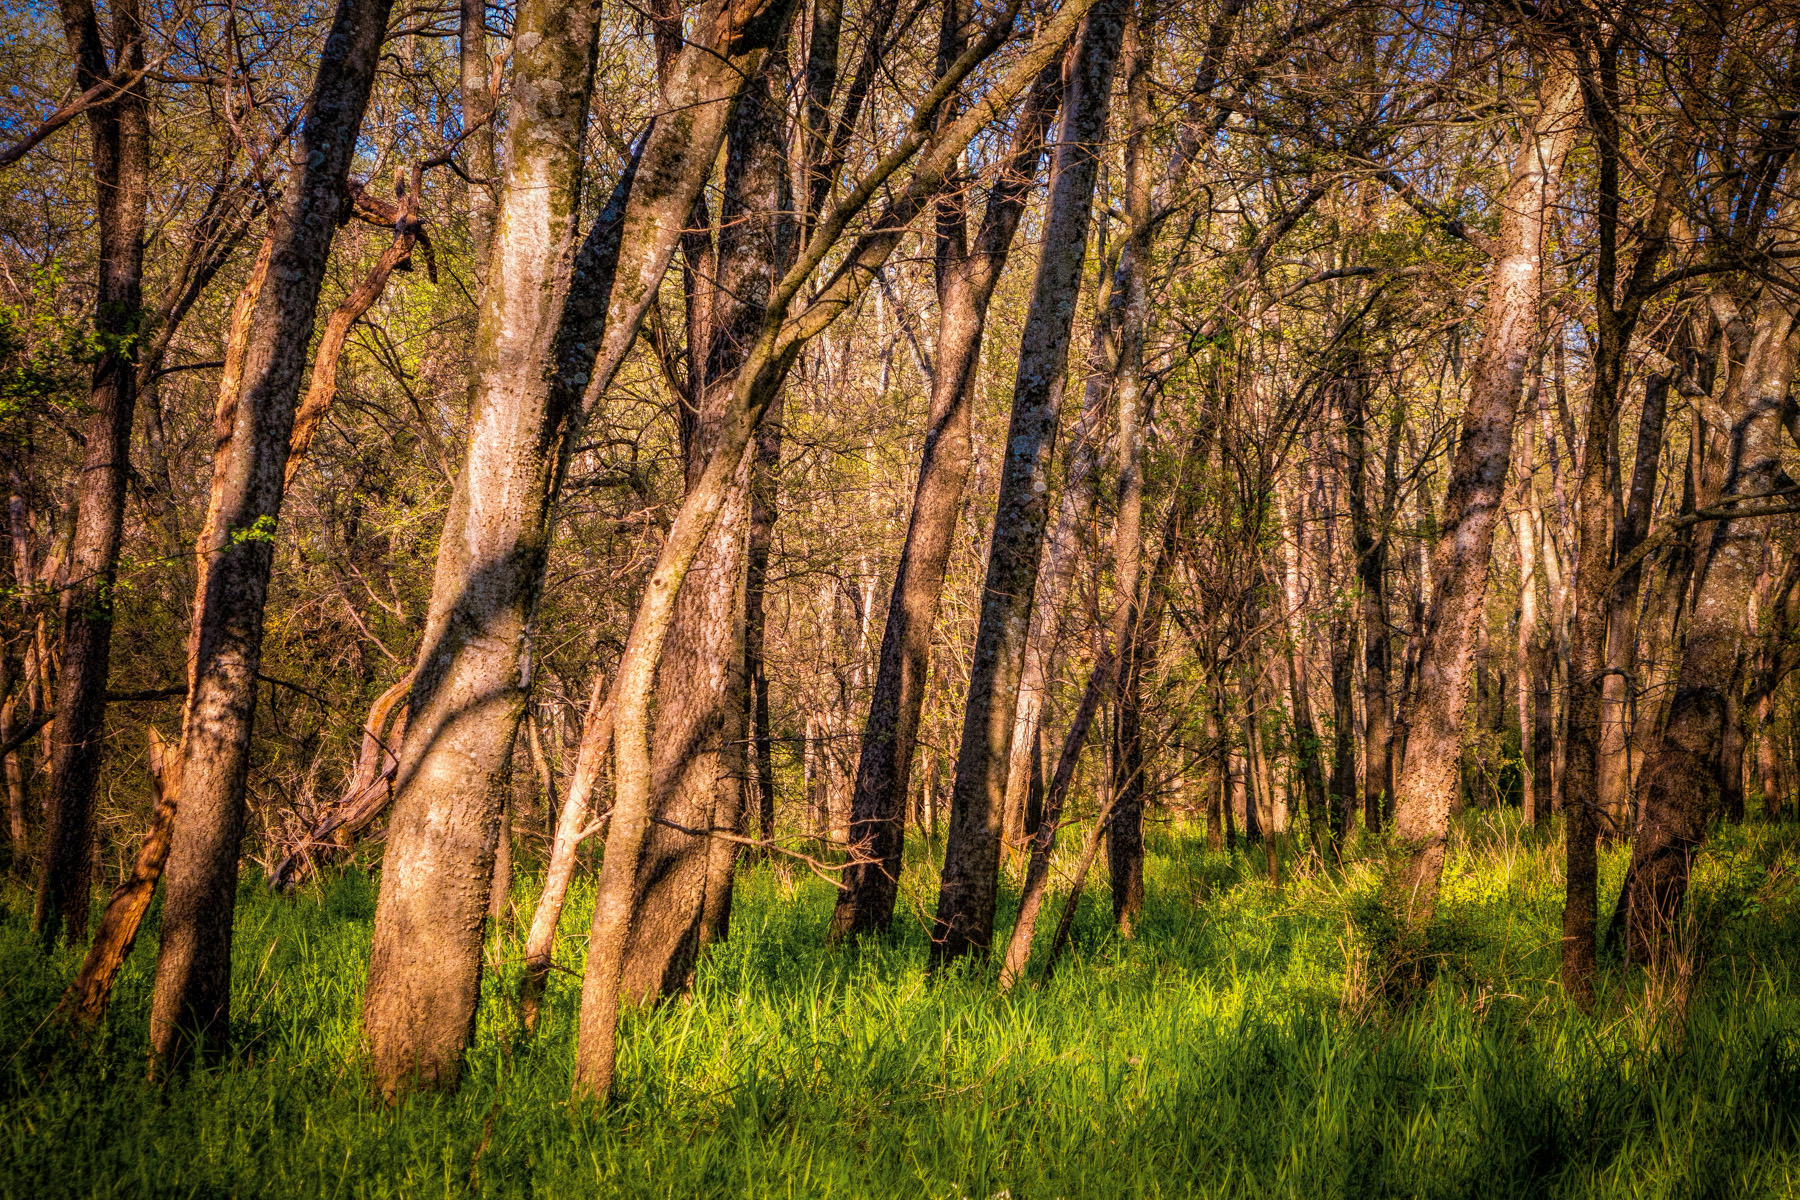 The morning sun illuminates trees in the Great Trinity Forest in Dallas, Texas.